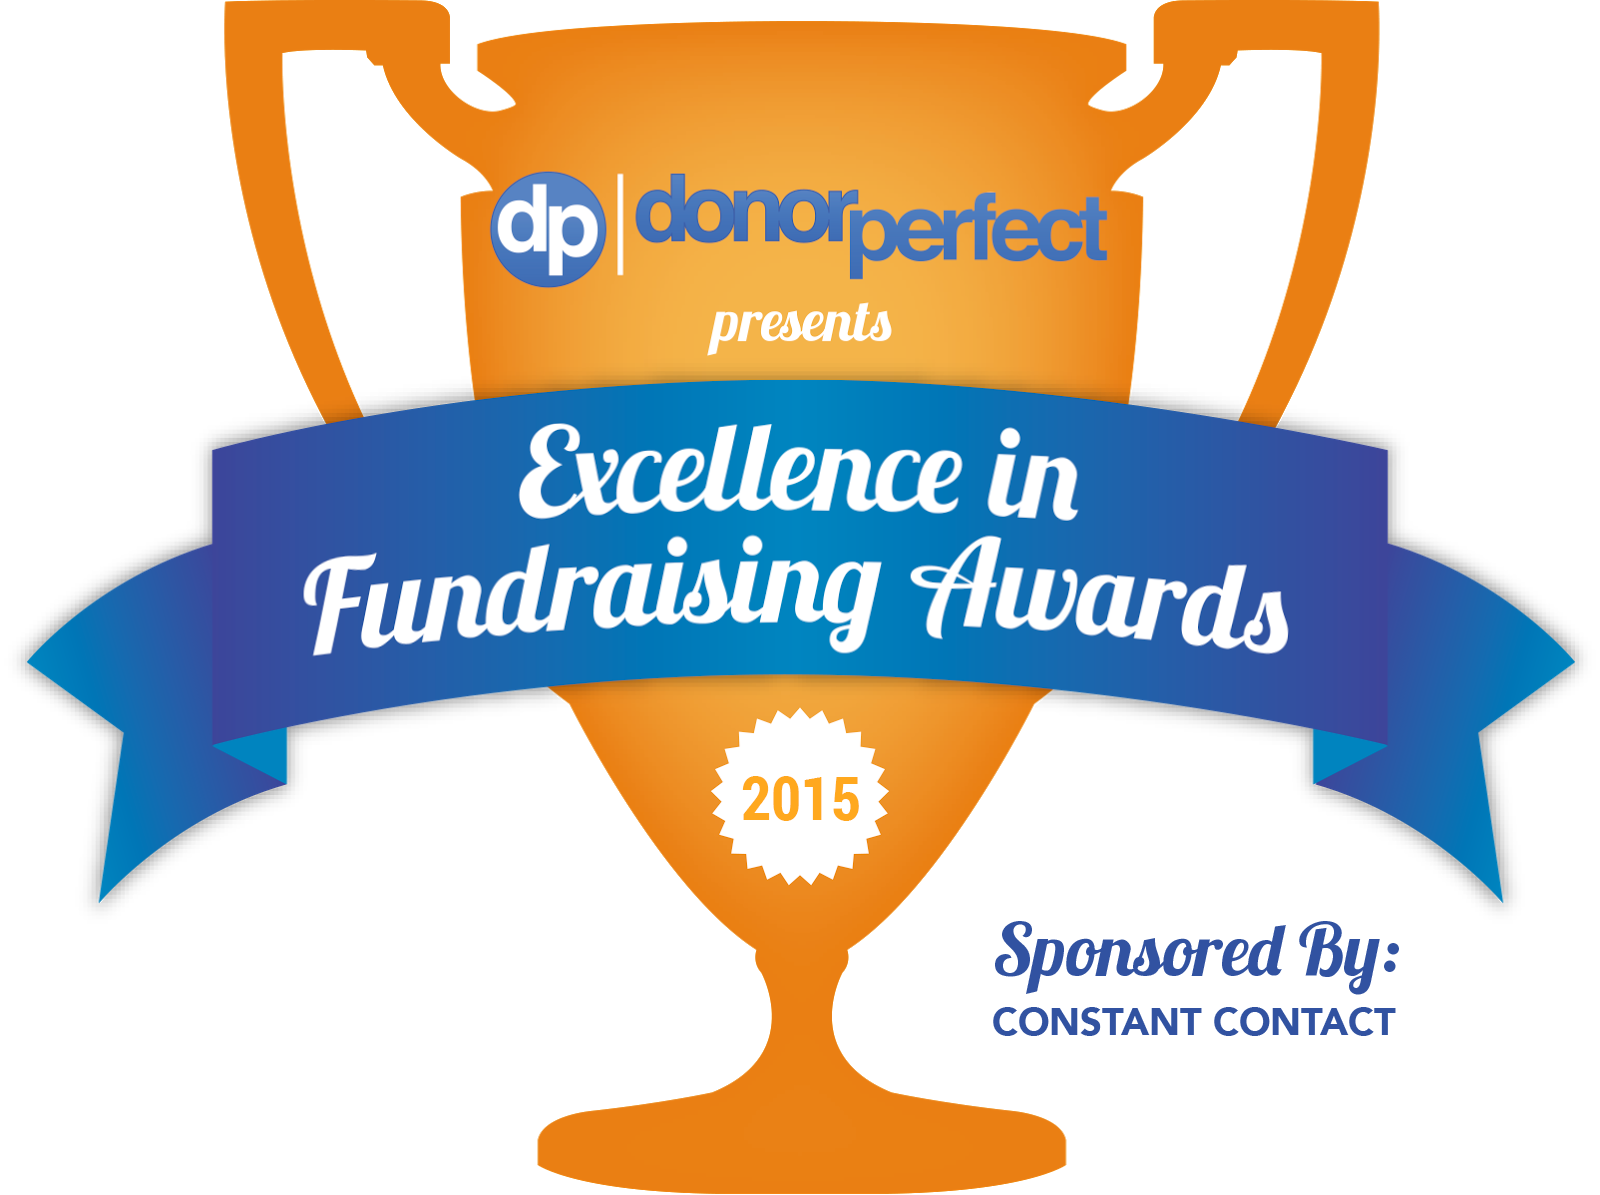 DonorPerfect Fundraising Award Trophy